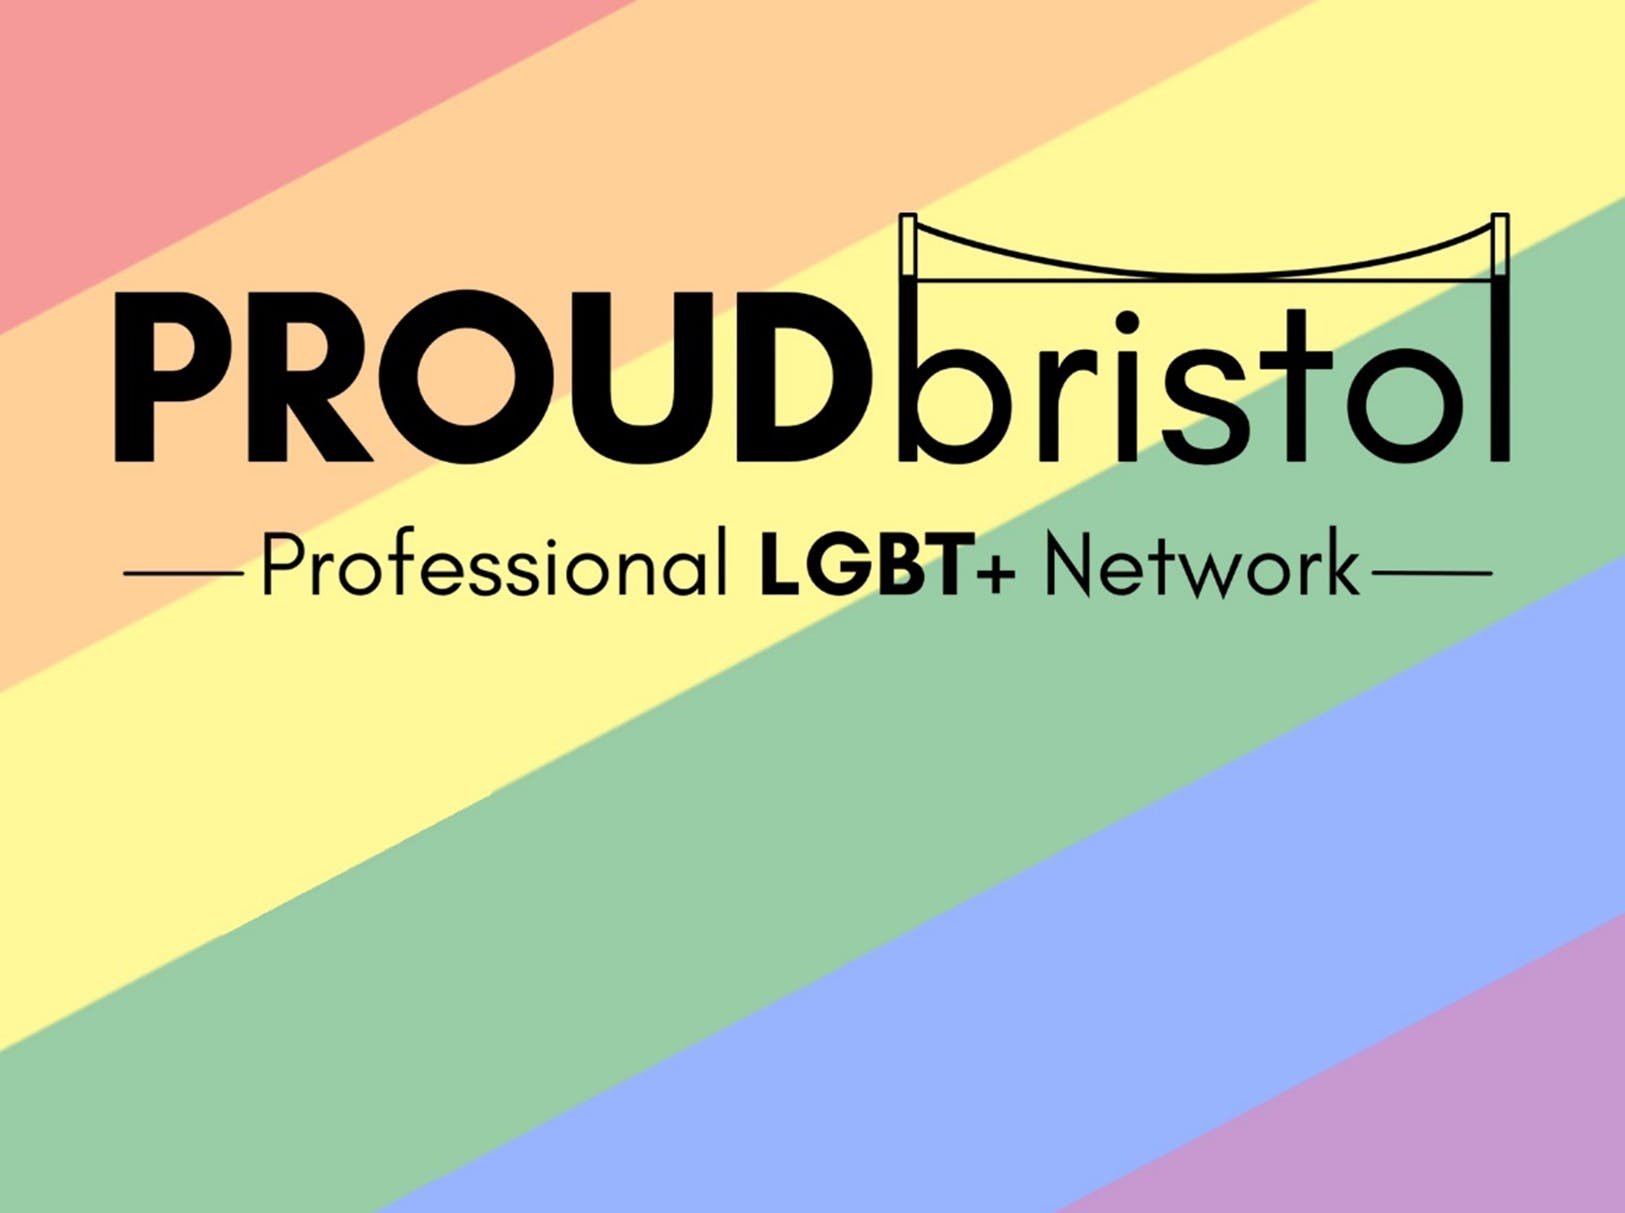 PROUDbristol @ PwC : The importance of being an ally